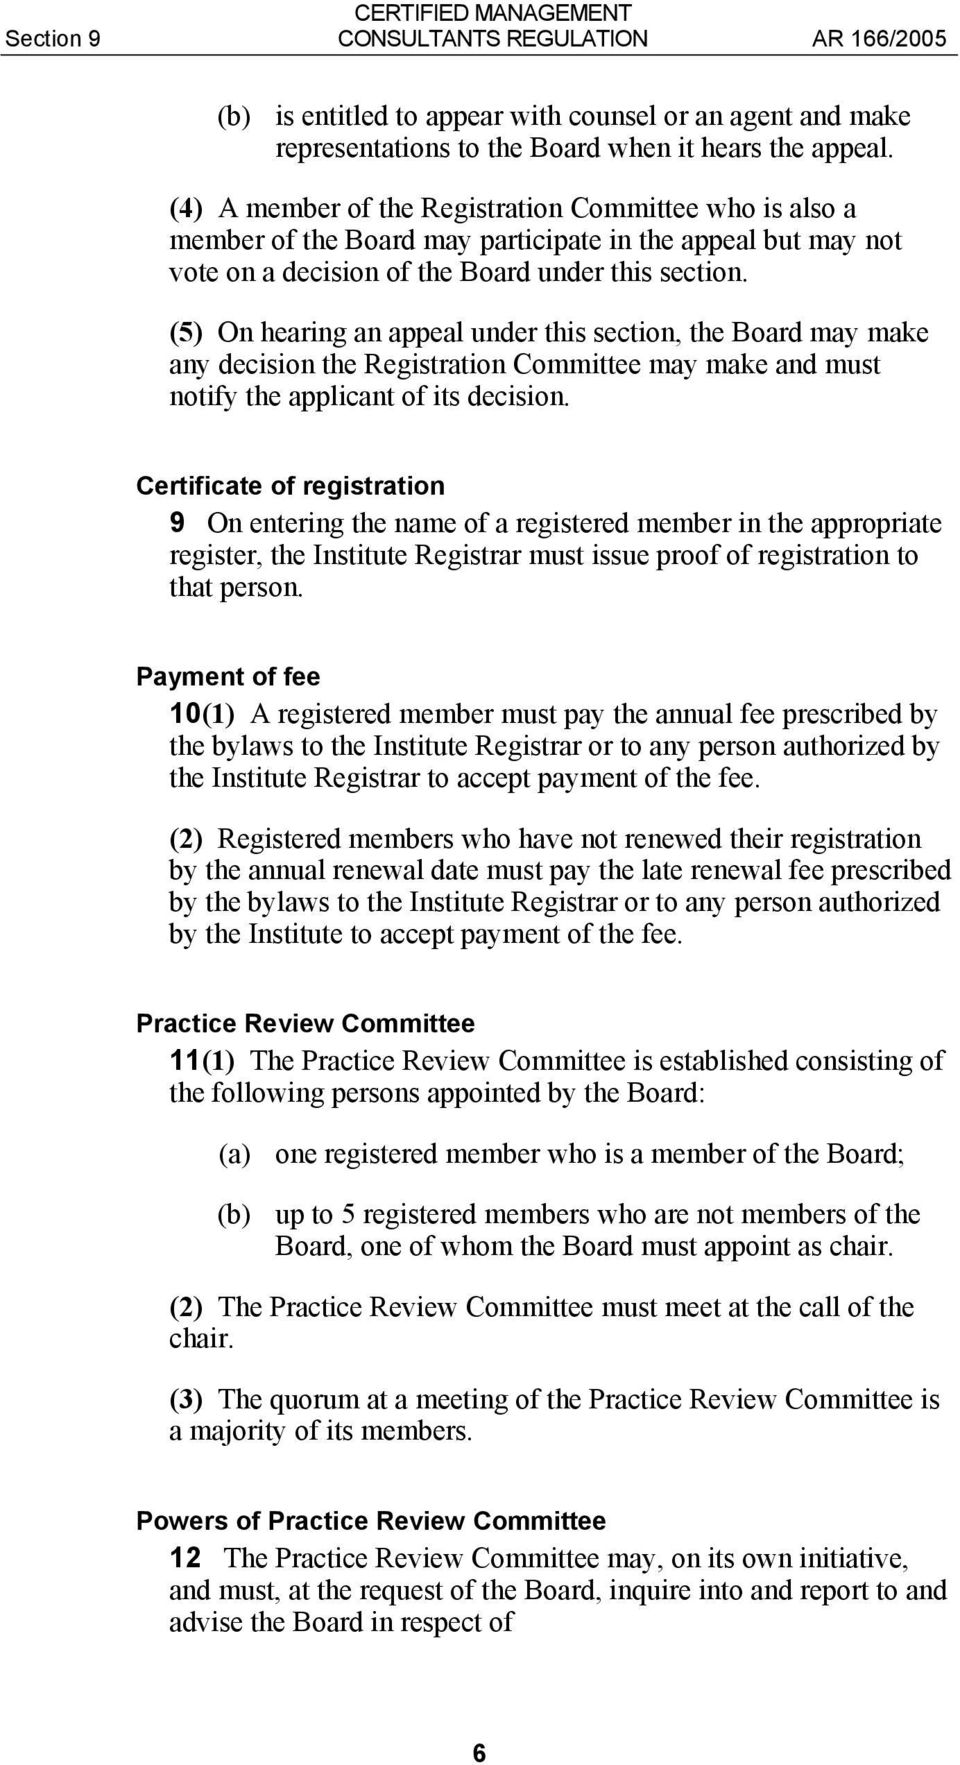 (5) On hearing an appeal under this section, the Board may make any decision the Registration Committee may make and must notify the applicant of its decision.